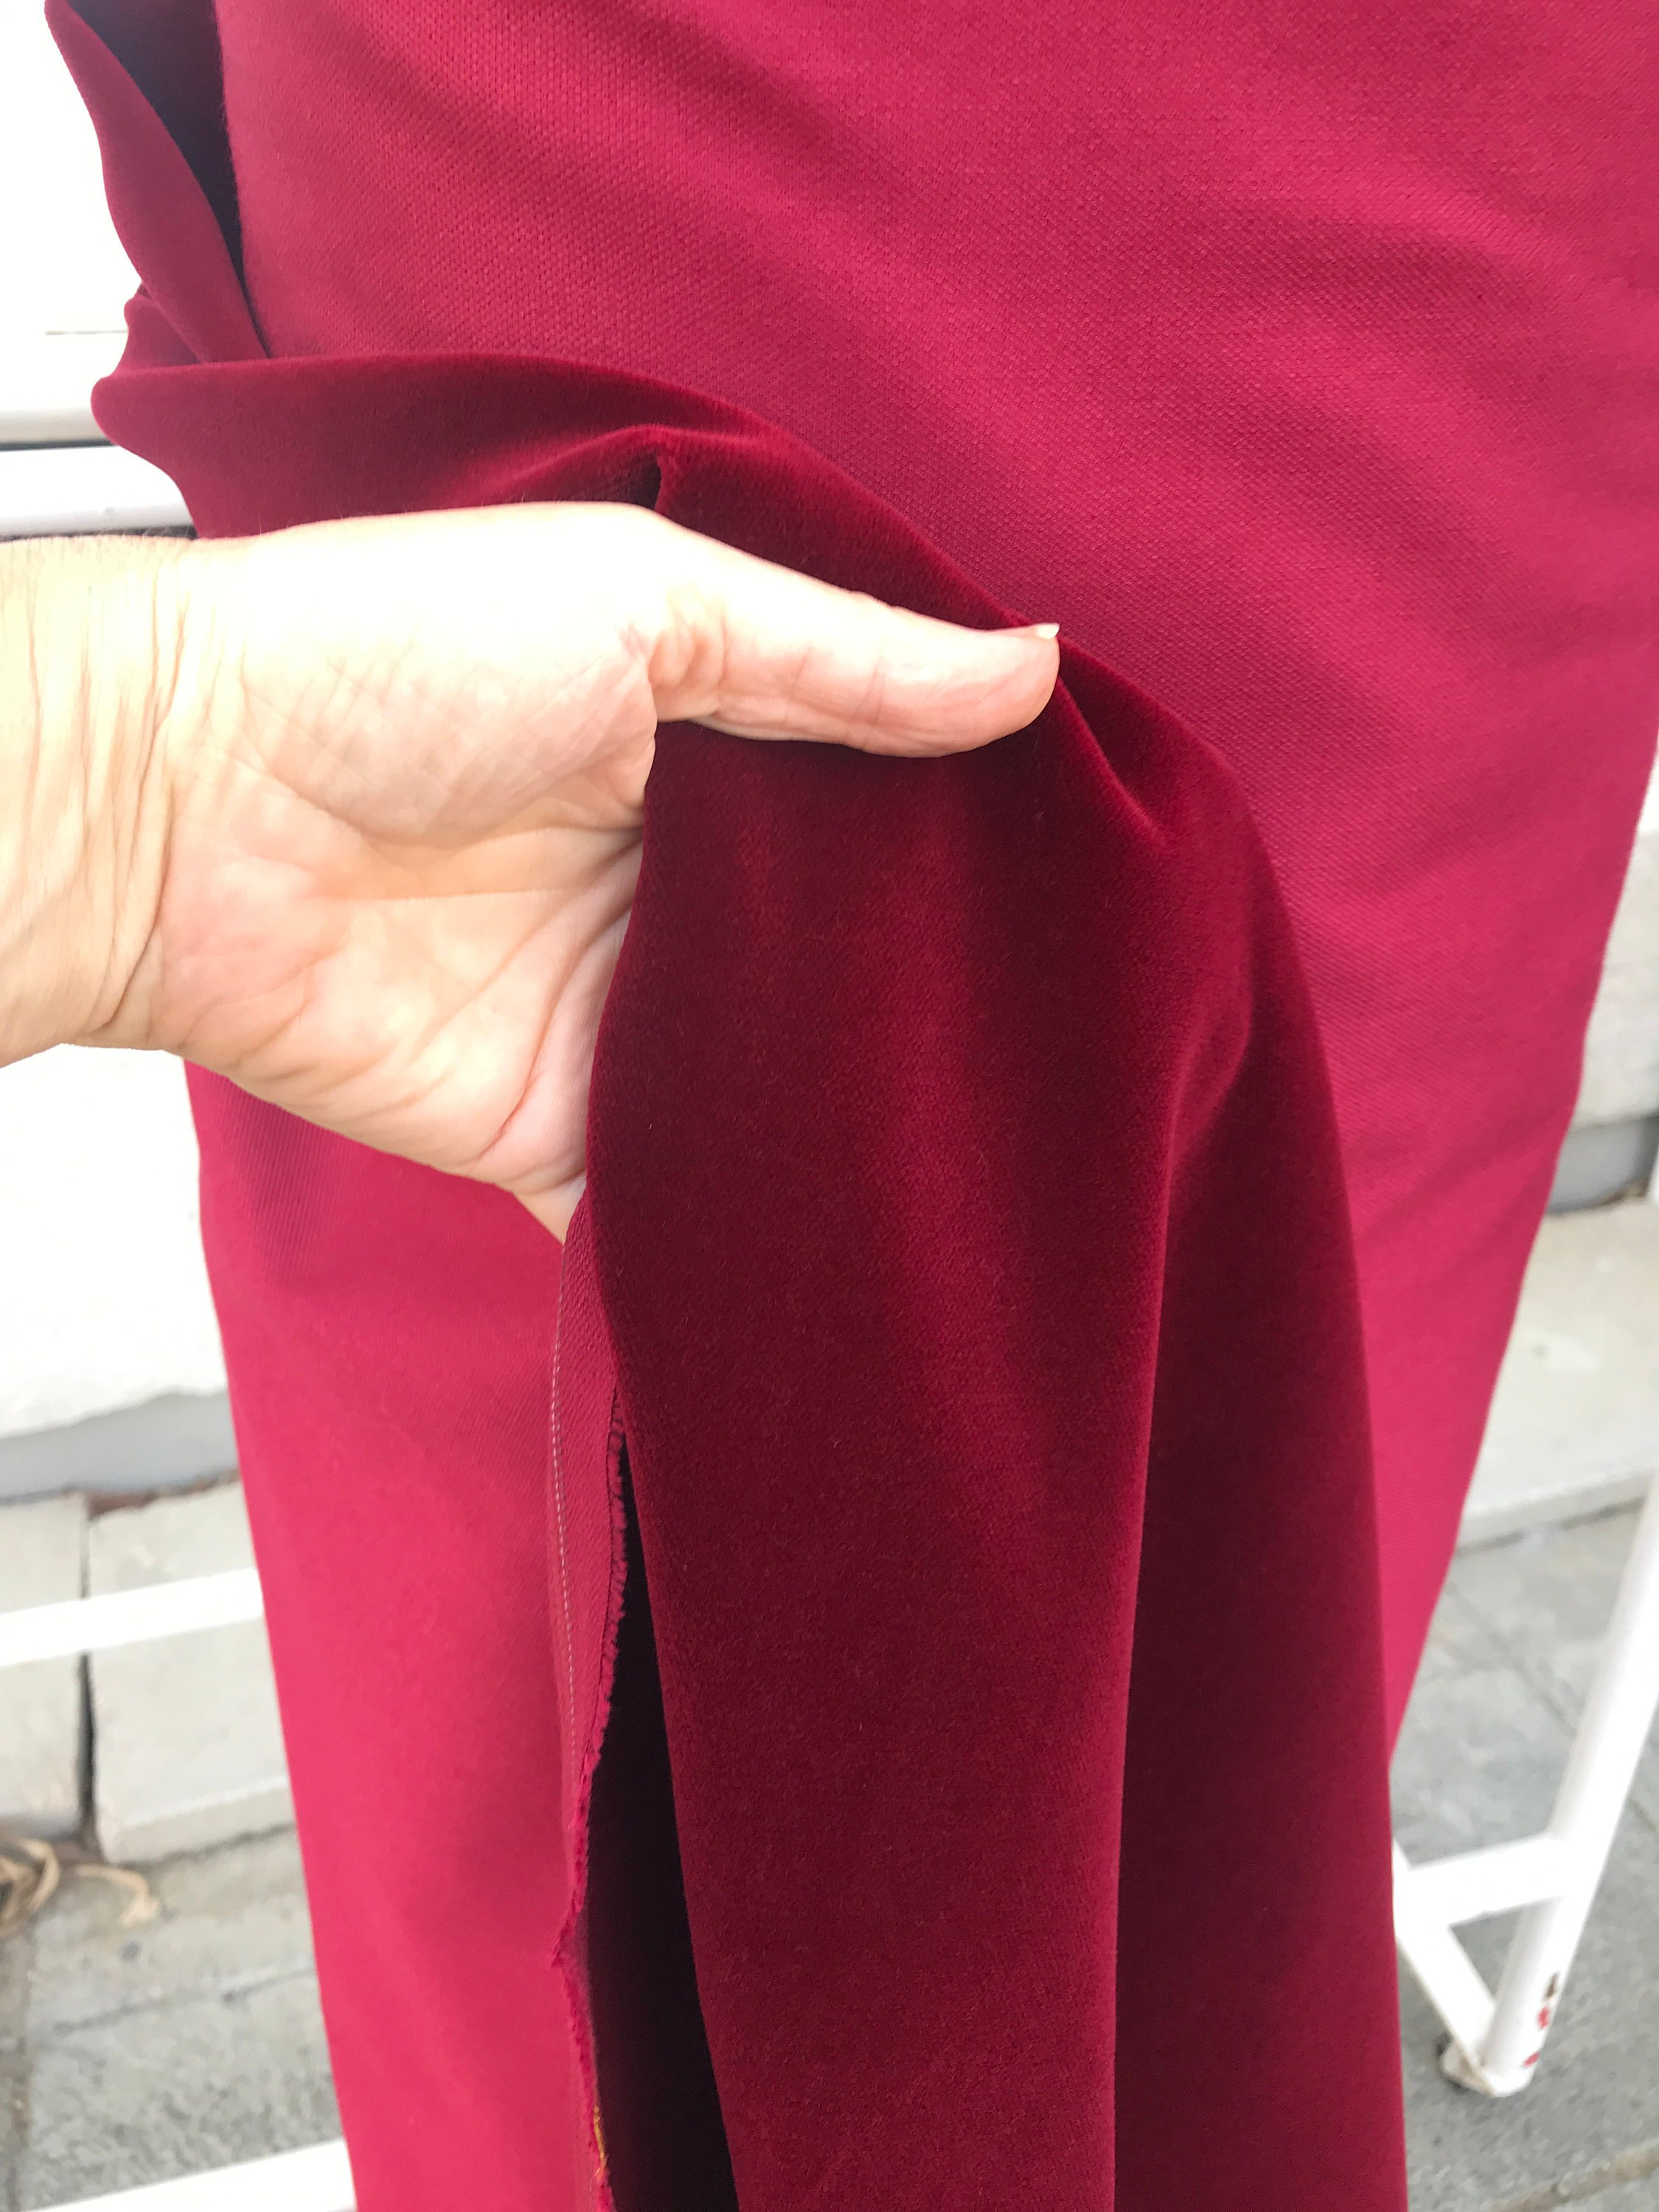 Burgundy Red cotton velvet fabric, premium quality by Niedick 150cm wide velvet coating